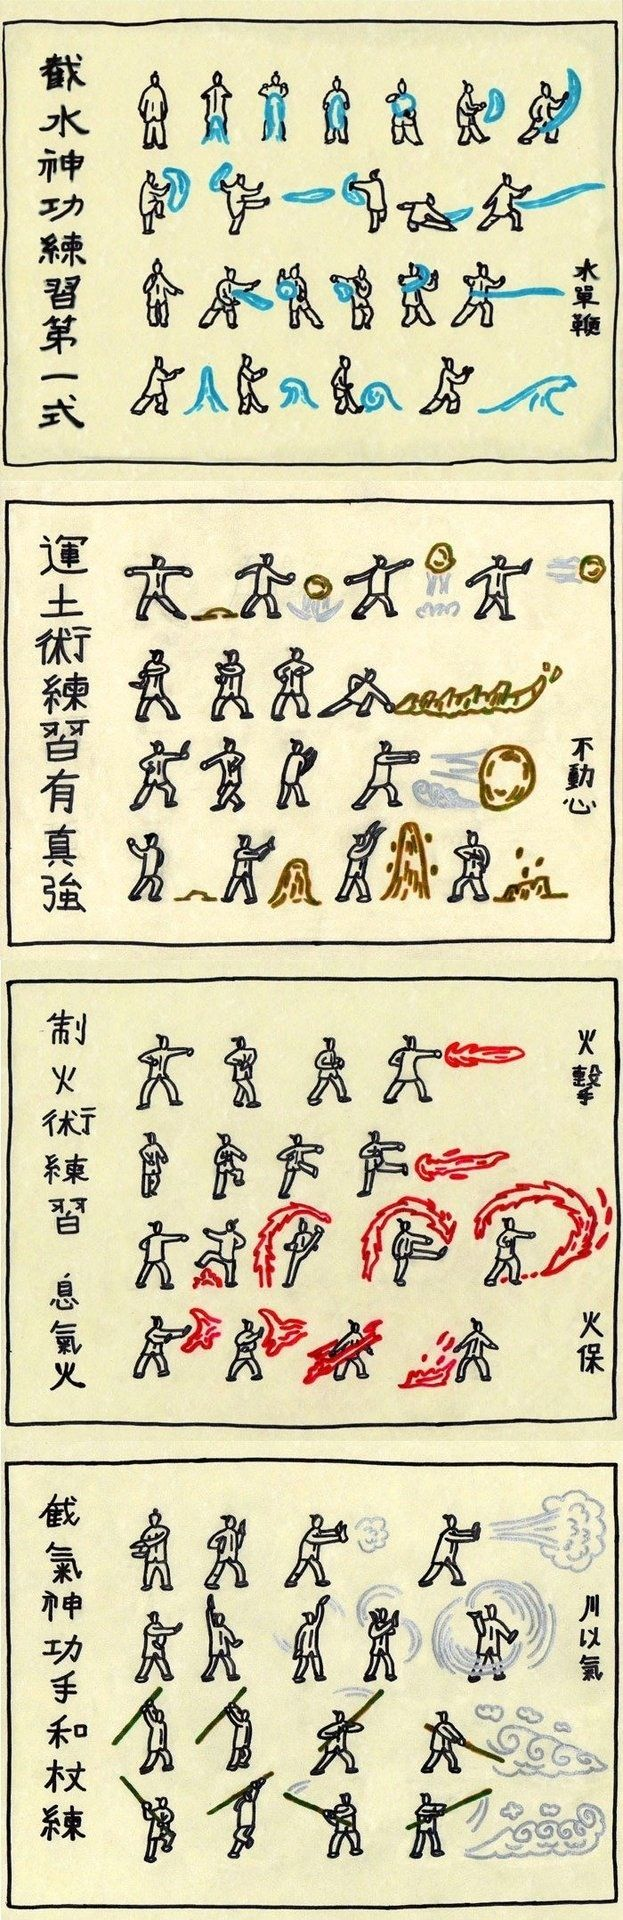 An illustration of the four elemental bending styles in the world of The Last Avatar